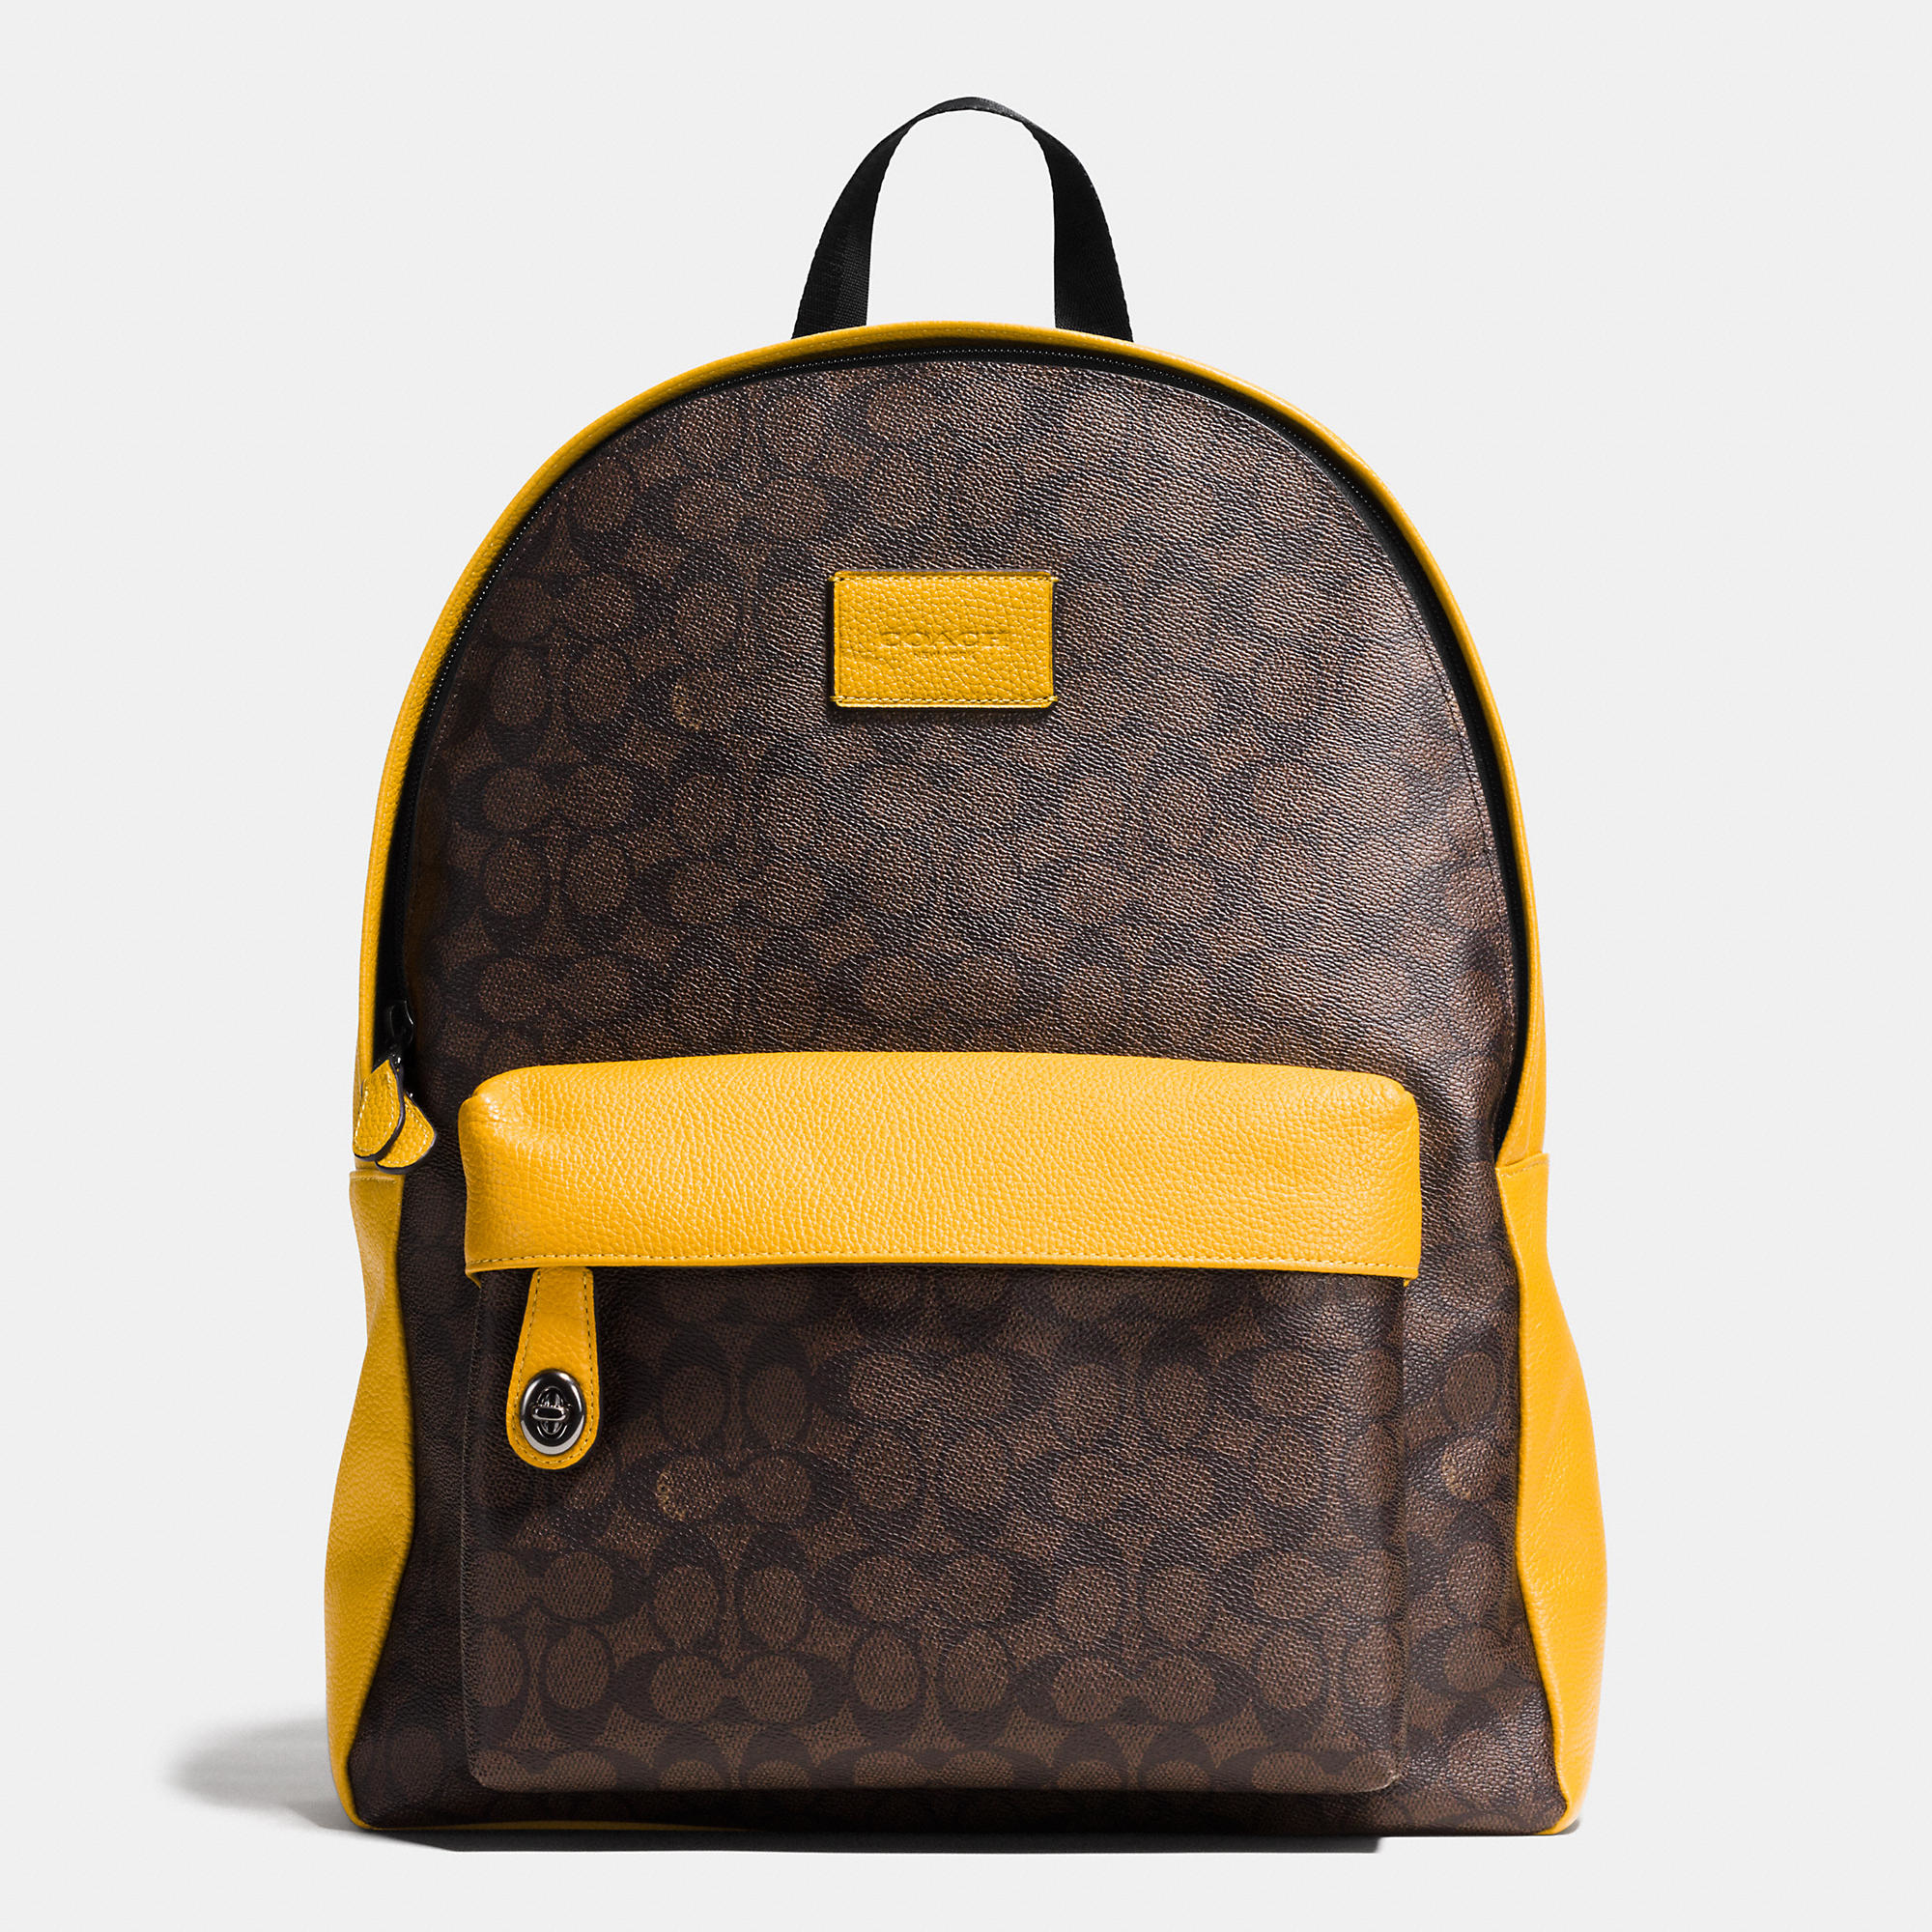 Coach Campus Backpack In Signature Canvas Coach naos9zW